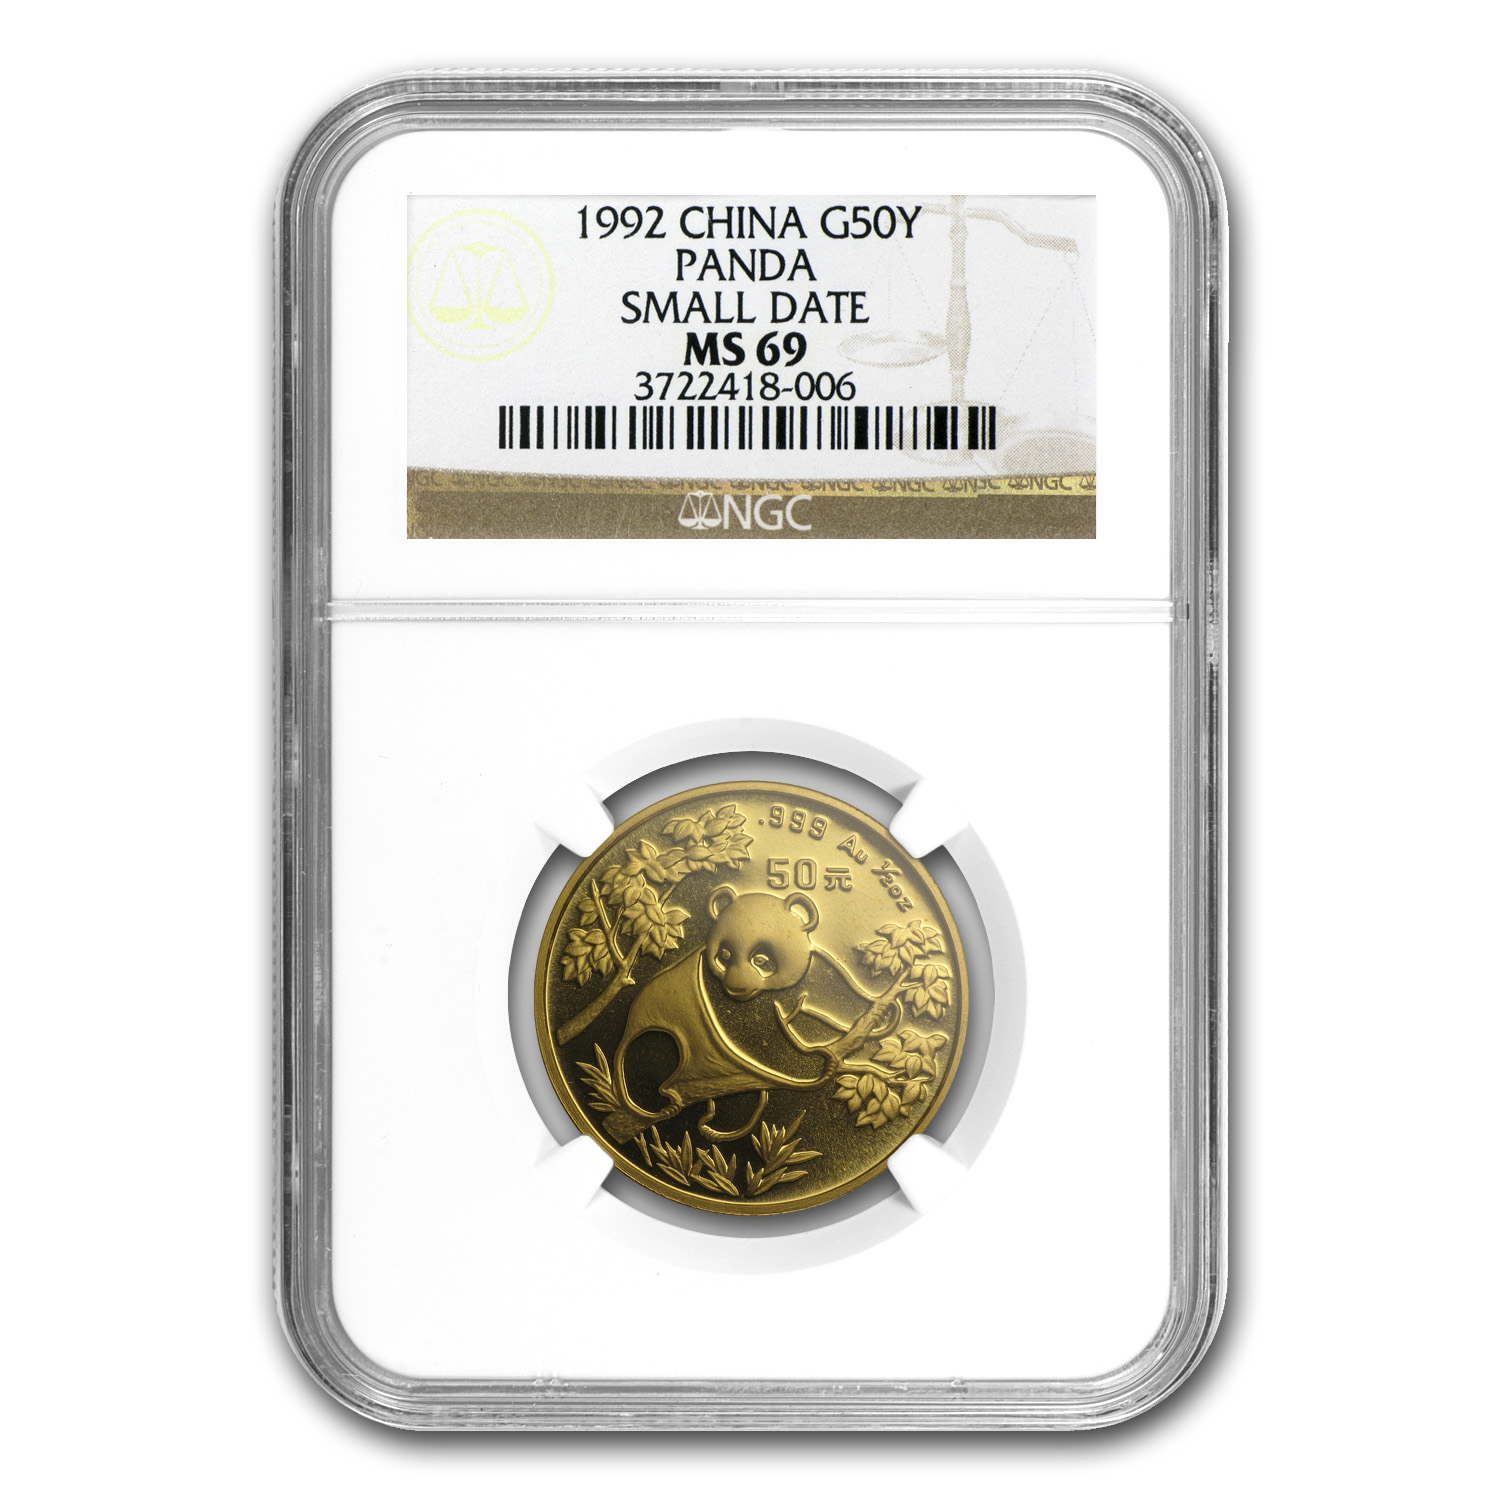 1992 China 1/2 oz Gold Panda Small Date MS-69 NGC